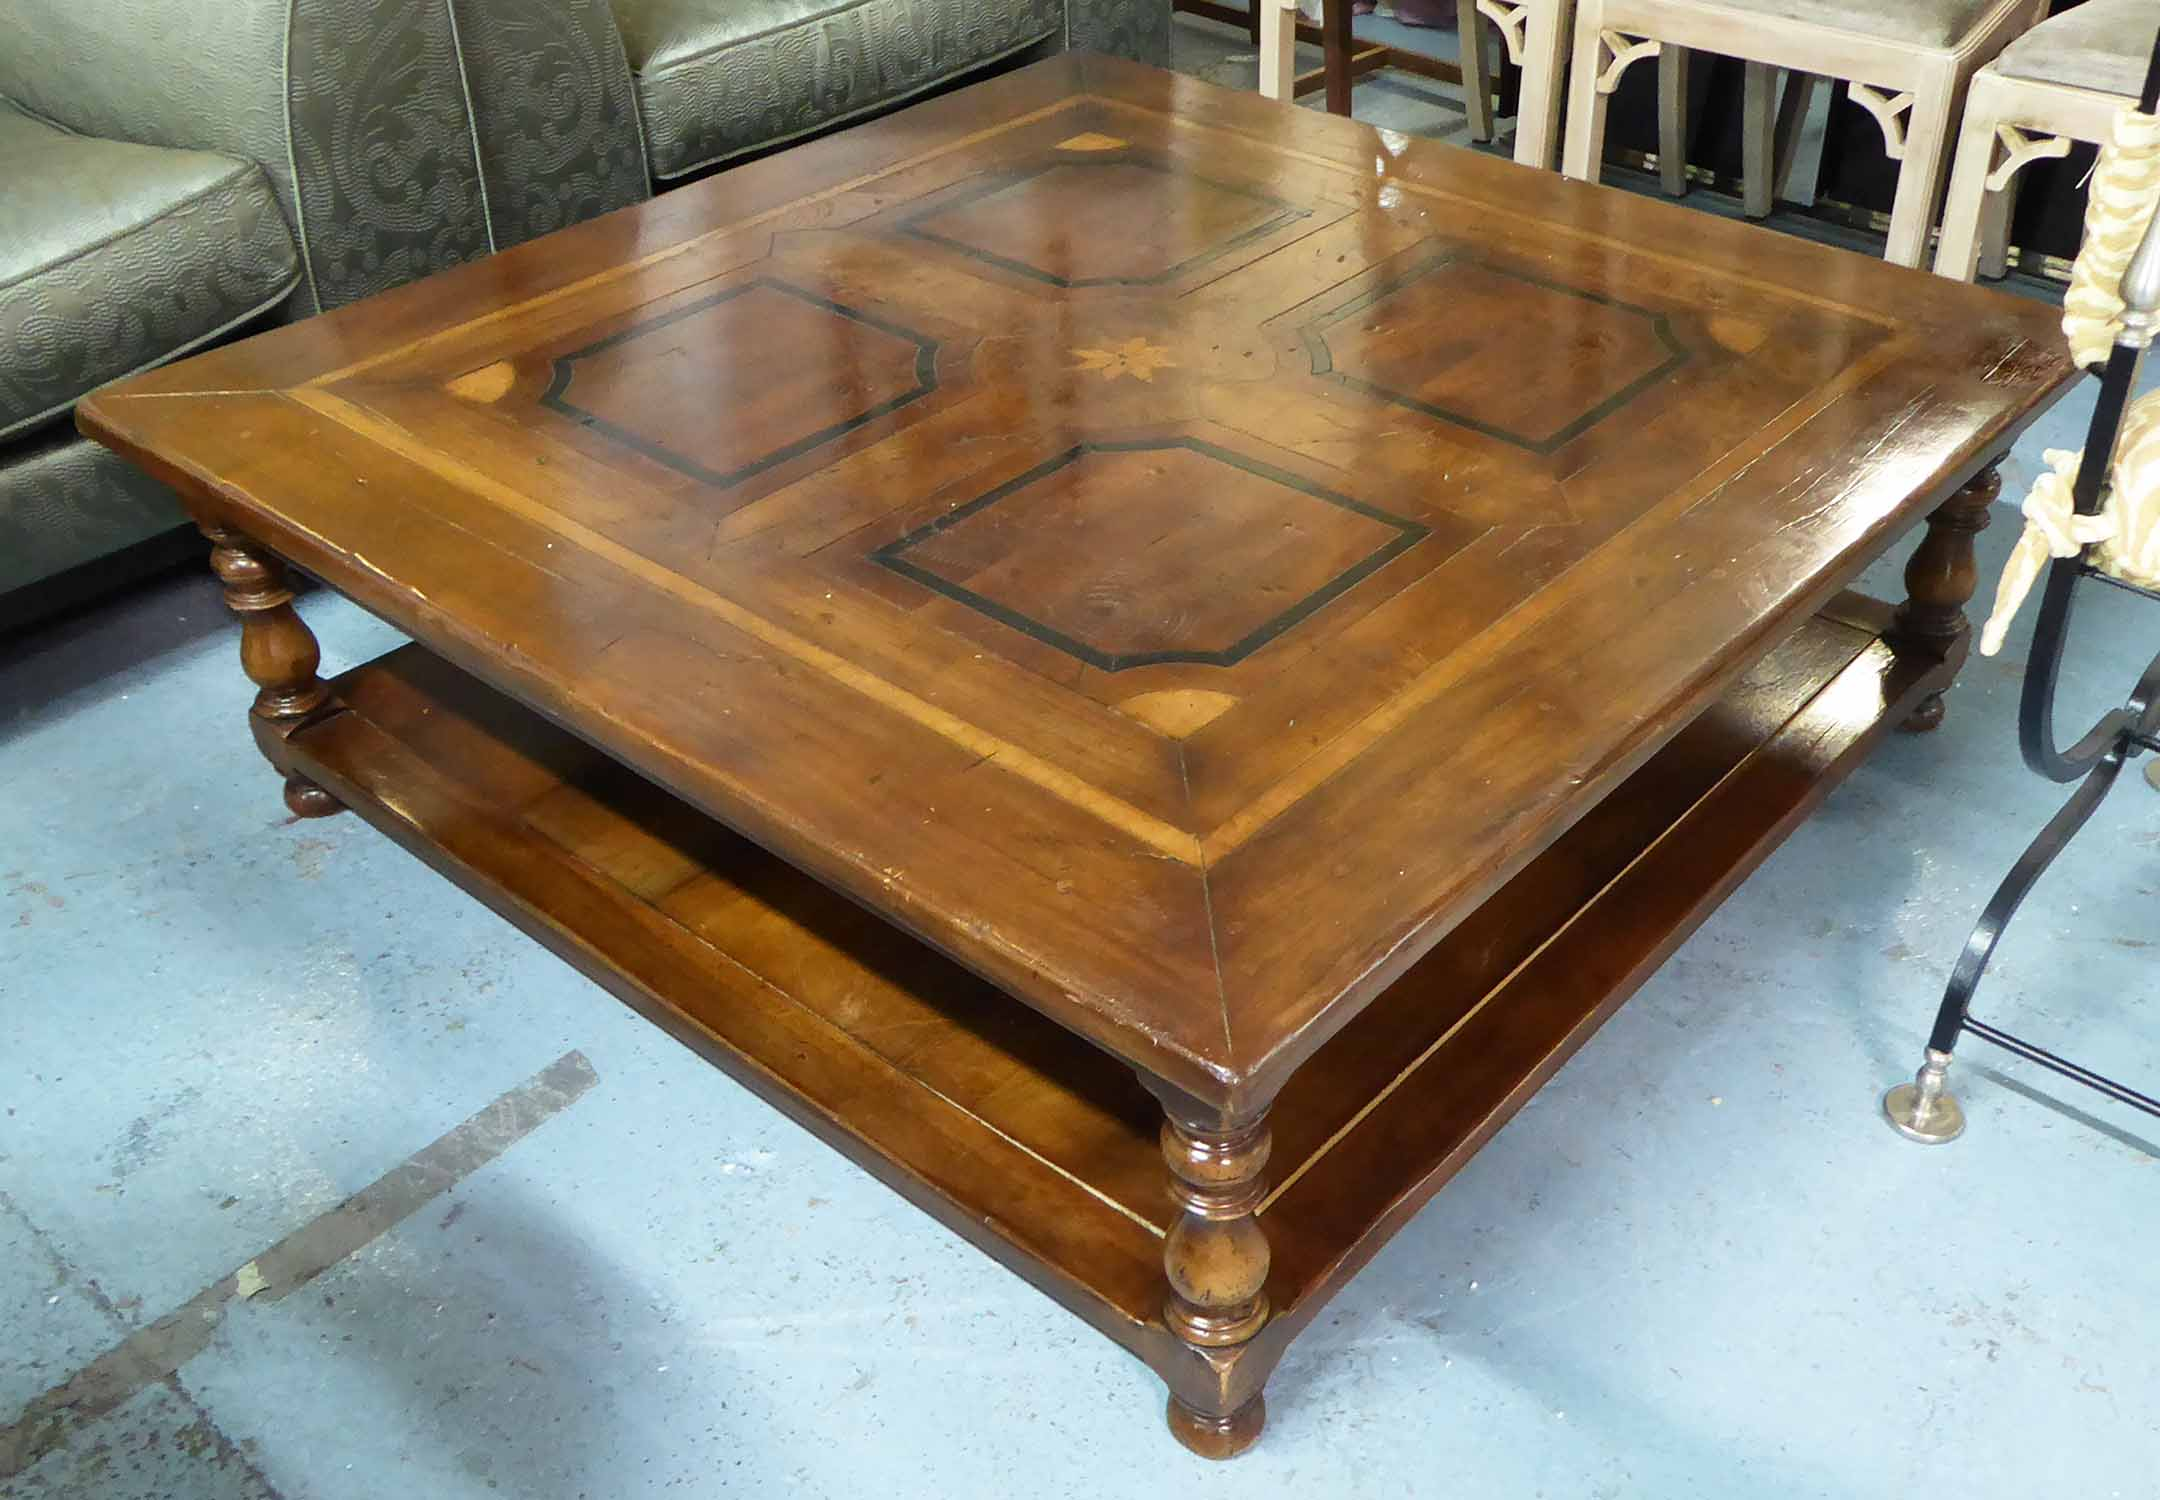 Lot 60 - LOW TABLE, French provincial style with marquetry top, 120cm x 120cm x 41cm.